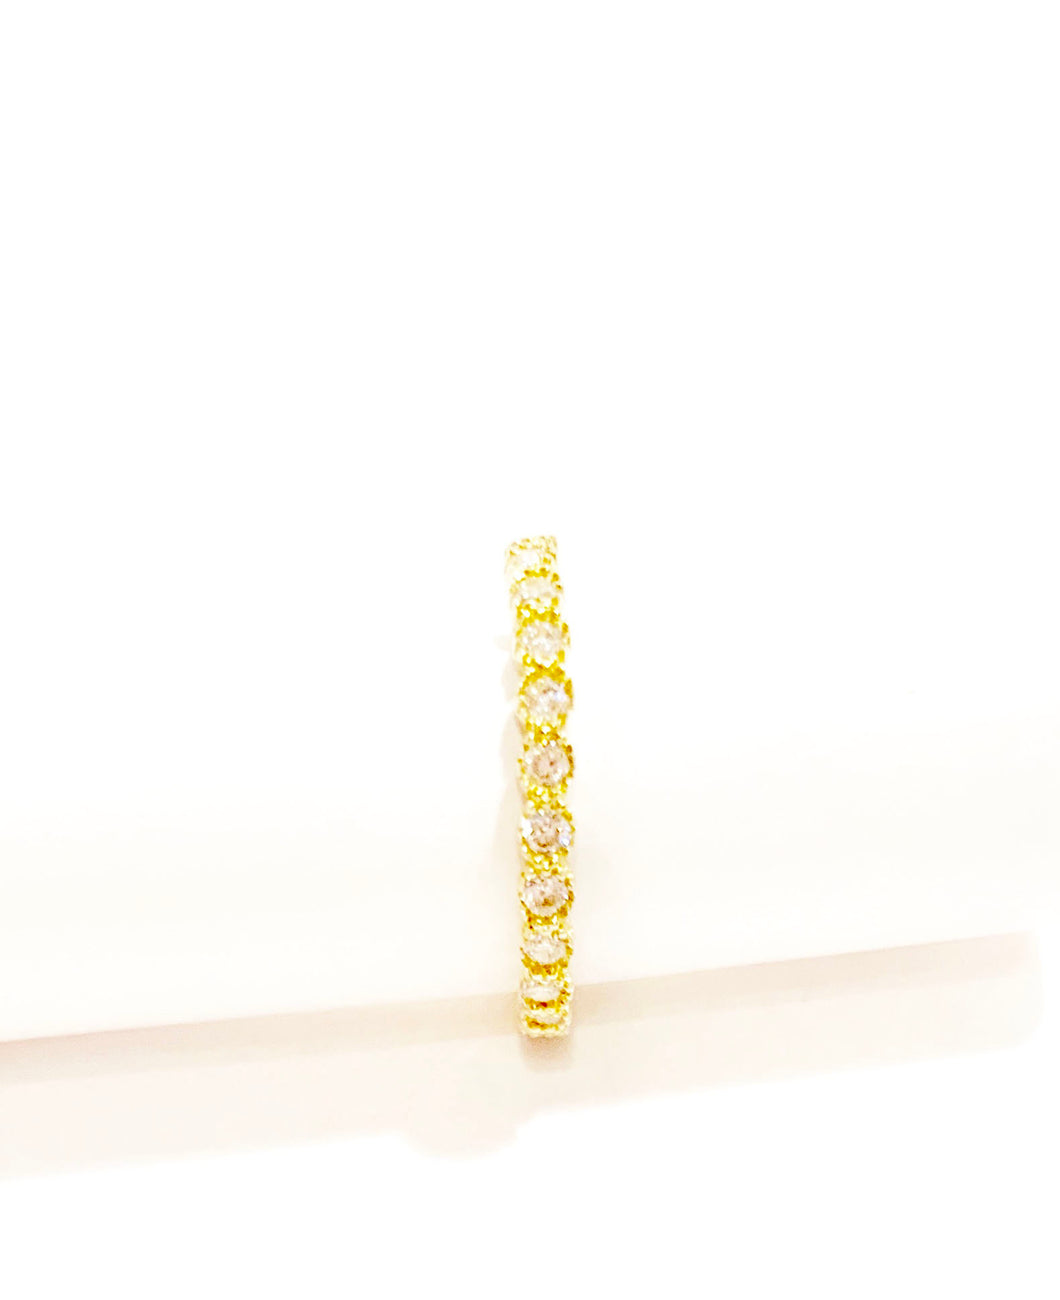 GOLD MINI RING